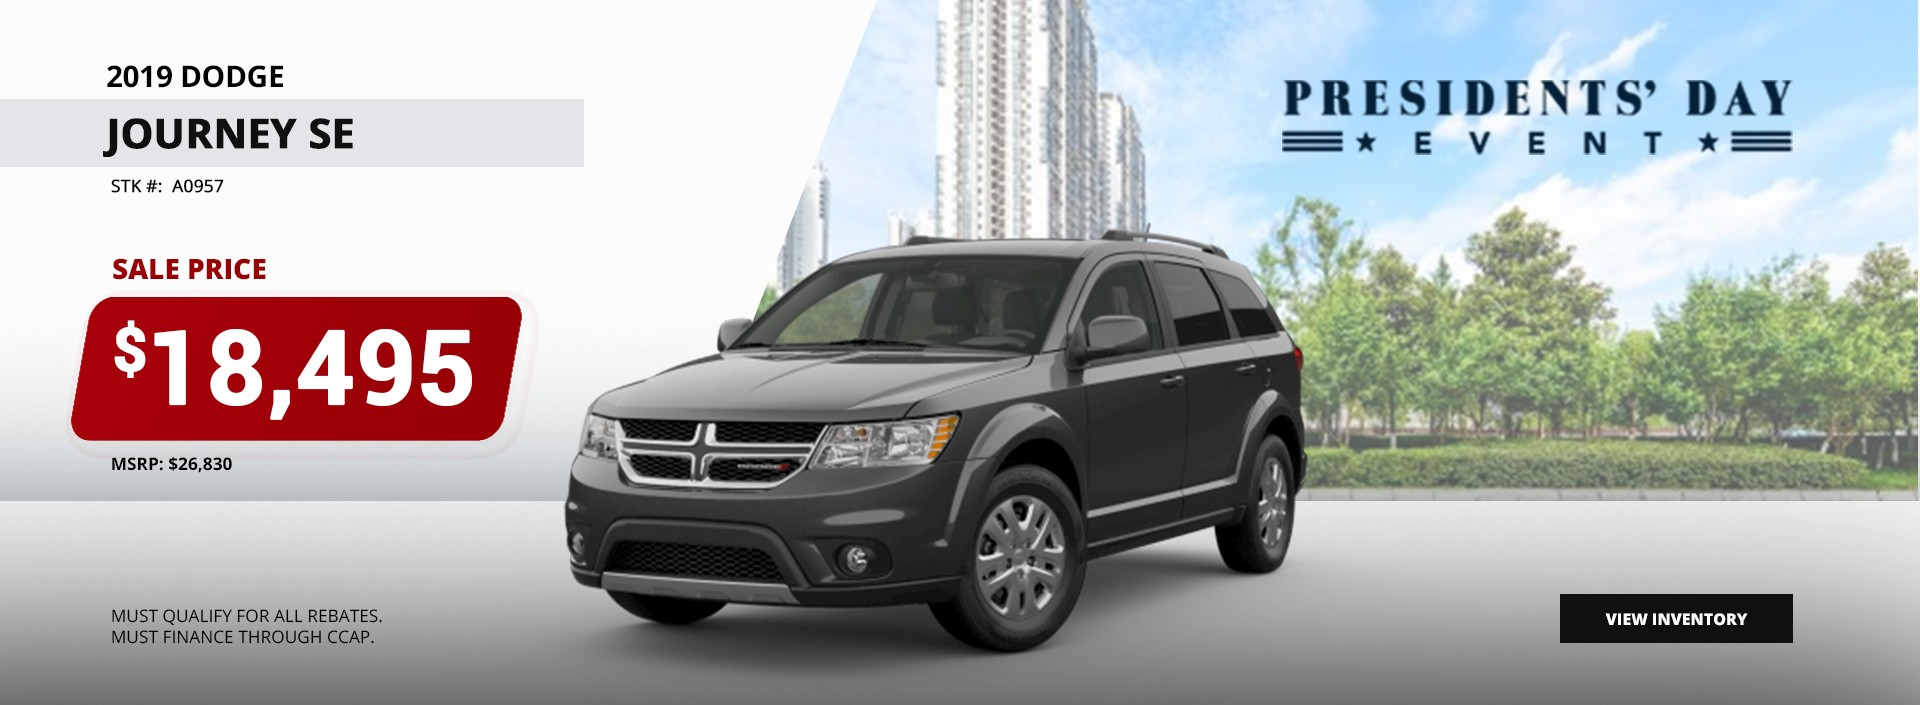 2019 Dodge Journey SE. Sale Price $18,495 at the President's Day Event